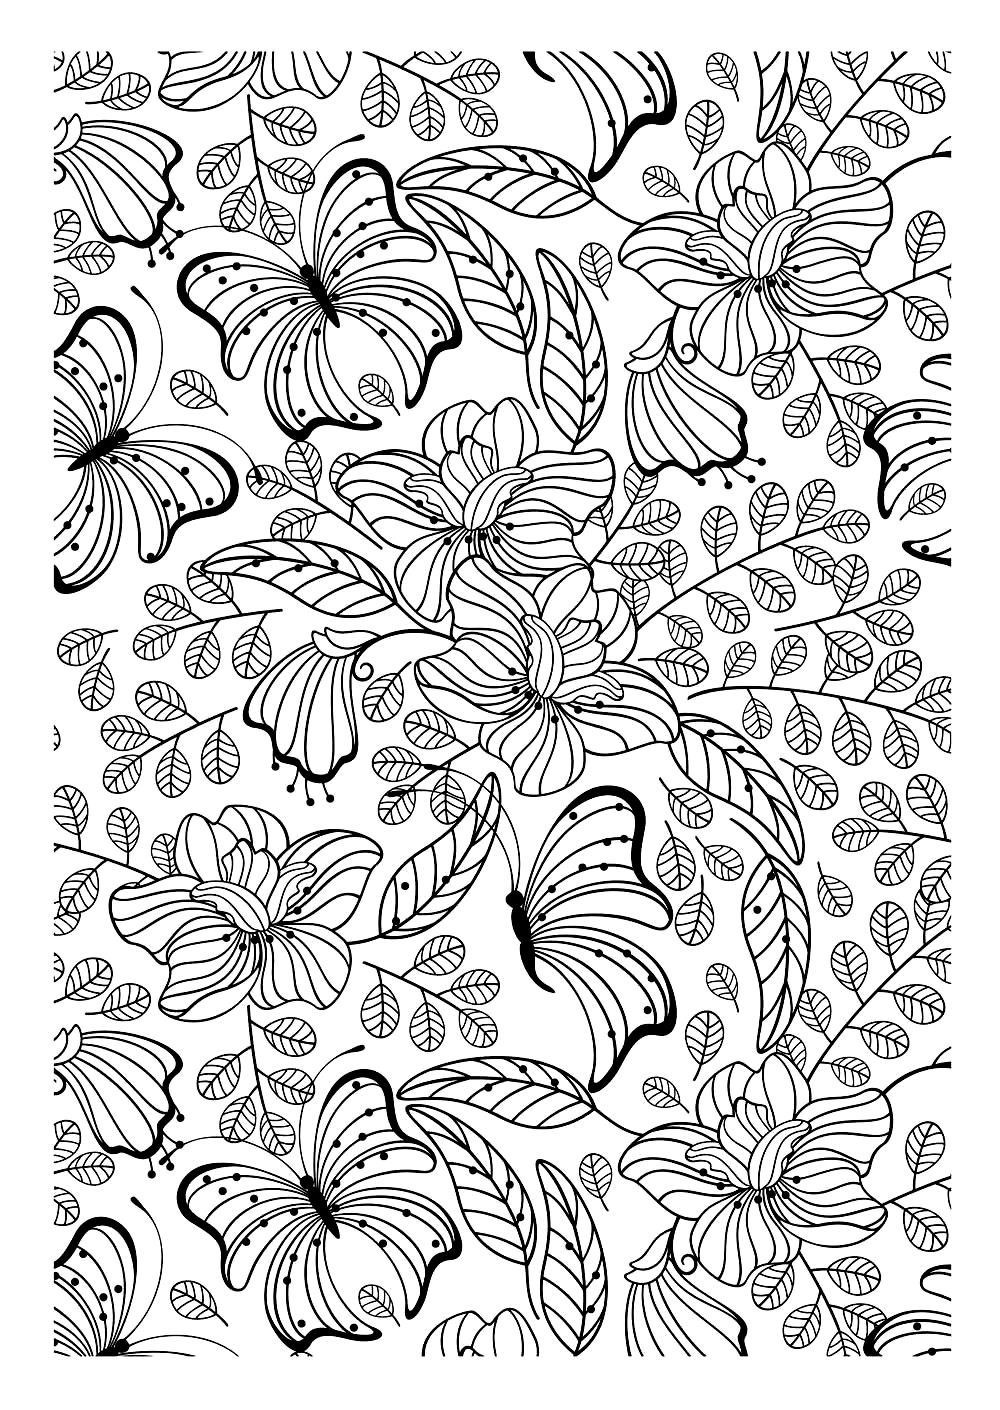 Insects coloring pages for adults coloring adult for Coloring pages of butterflies for adults